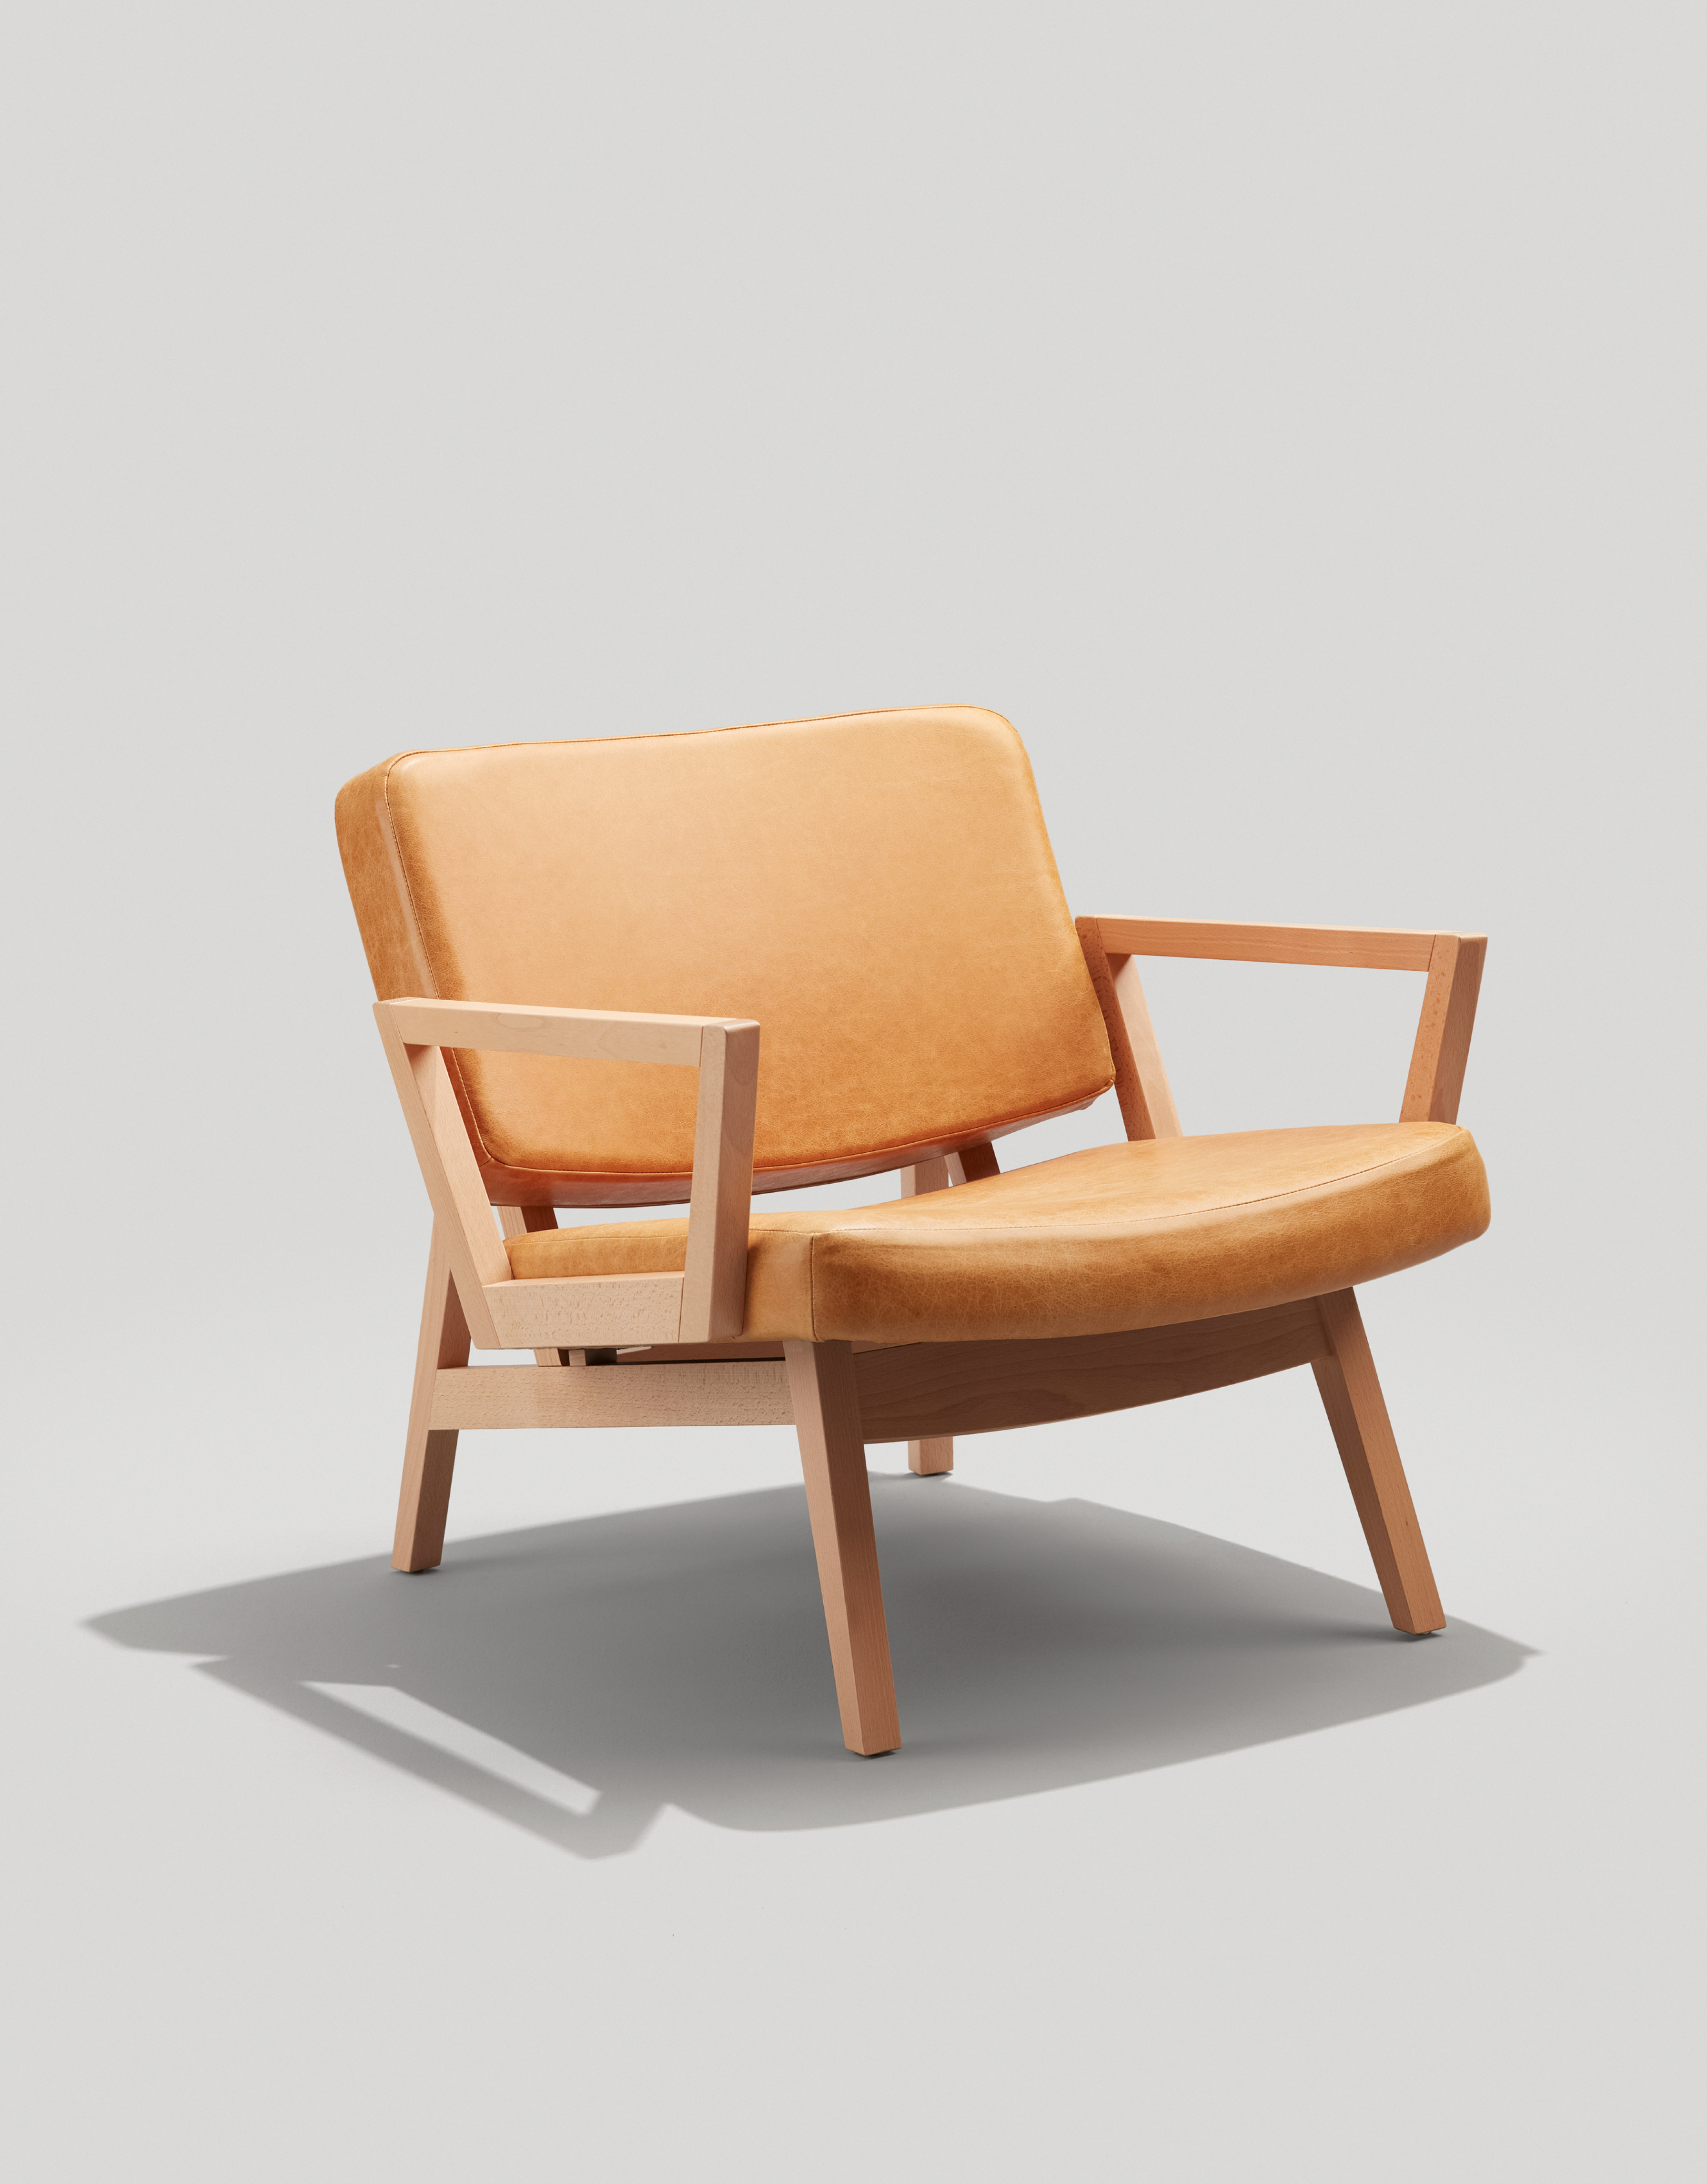 Awesome 4 Reasons To Love This Modern Lounge Chair Is This A Dailytribune Chair Design For Home Dailytribuneorg